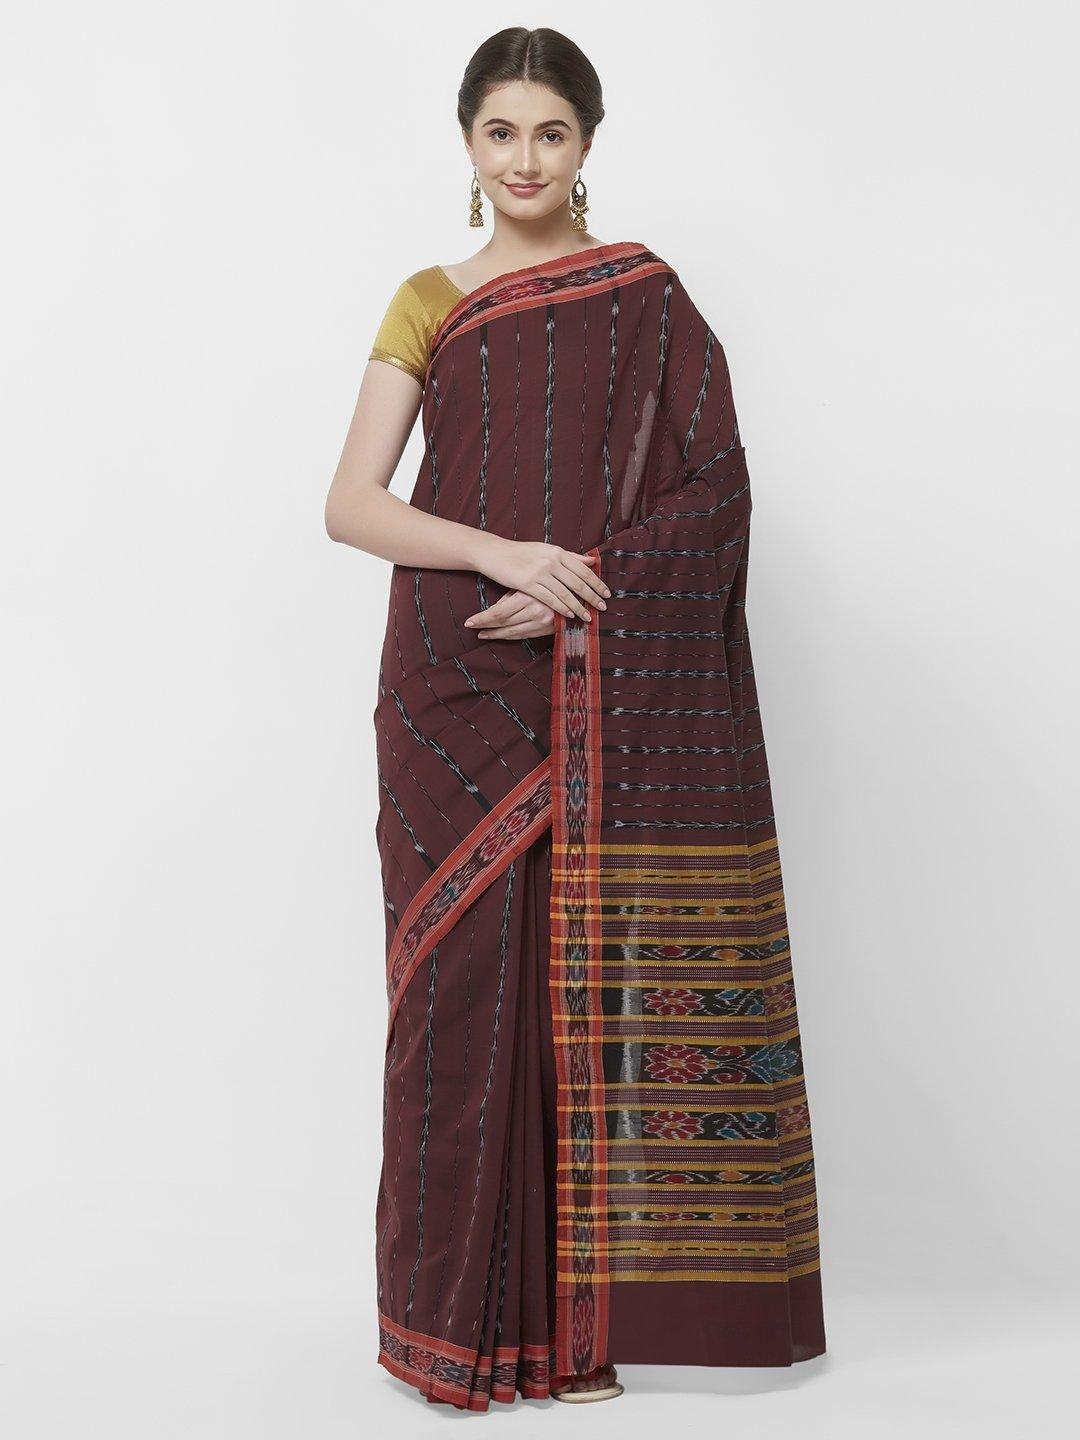 CraftsCollection.in -Maroon Odisha Cotton Saree with matching Sambalpuri Blouse